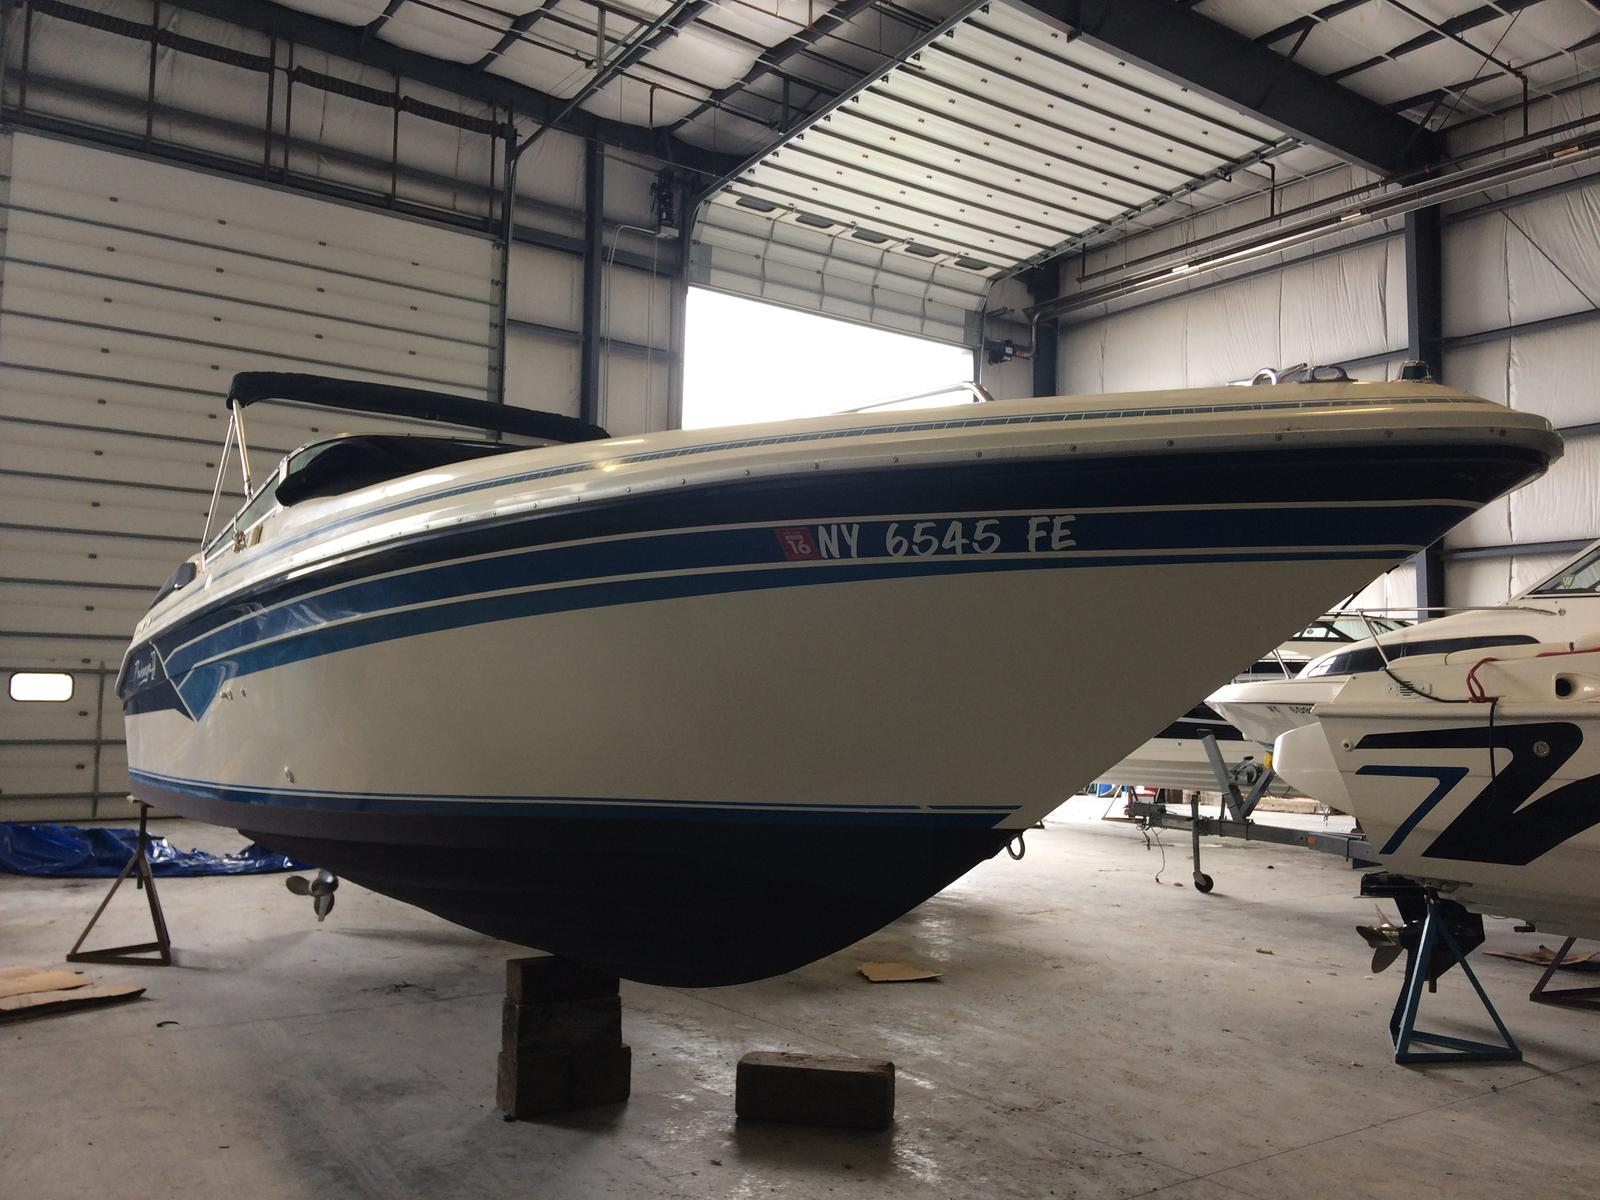 Used 1989 Sea Ray 27 Pachanga - Hutchinson's Boat Works